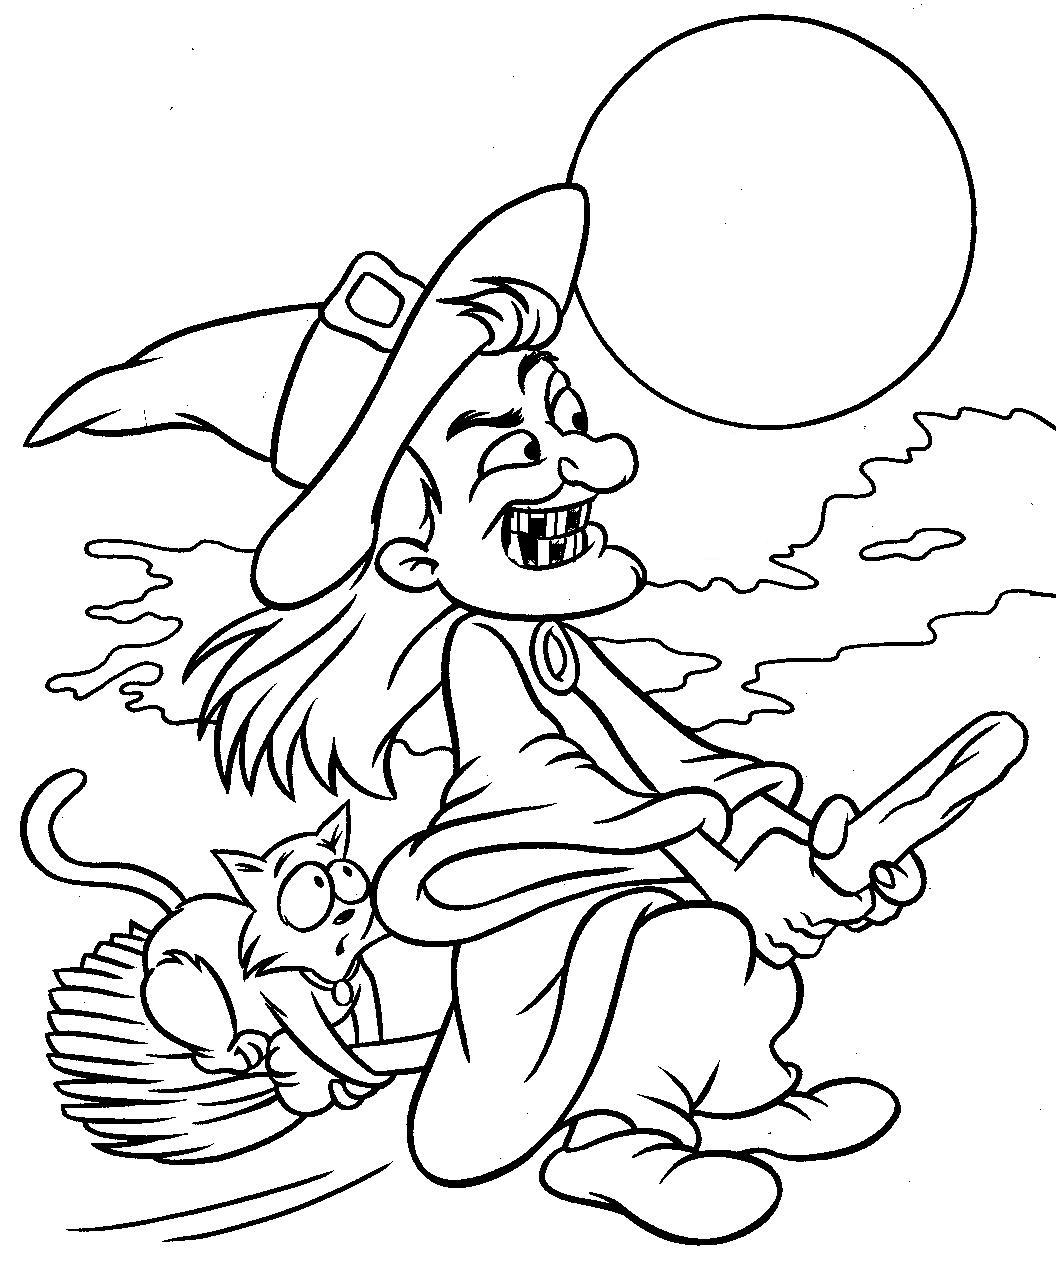 halloween coloring pages, printable, free - photo#24